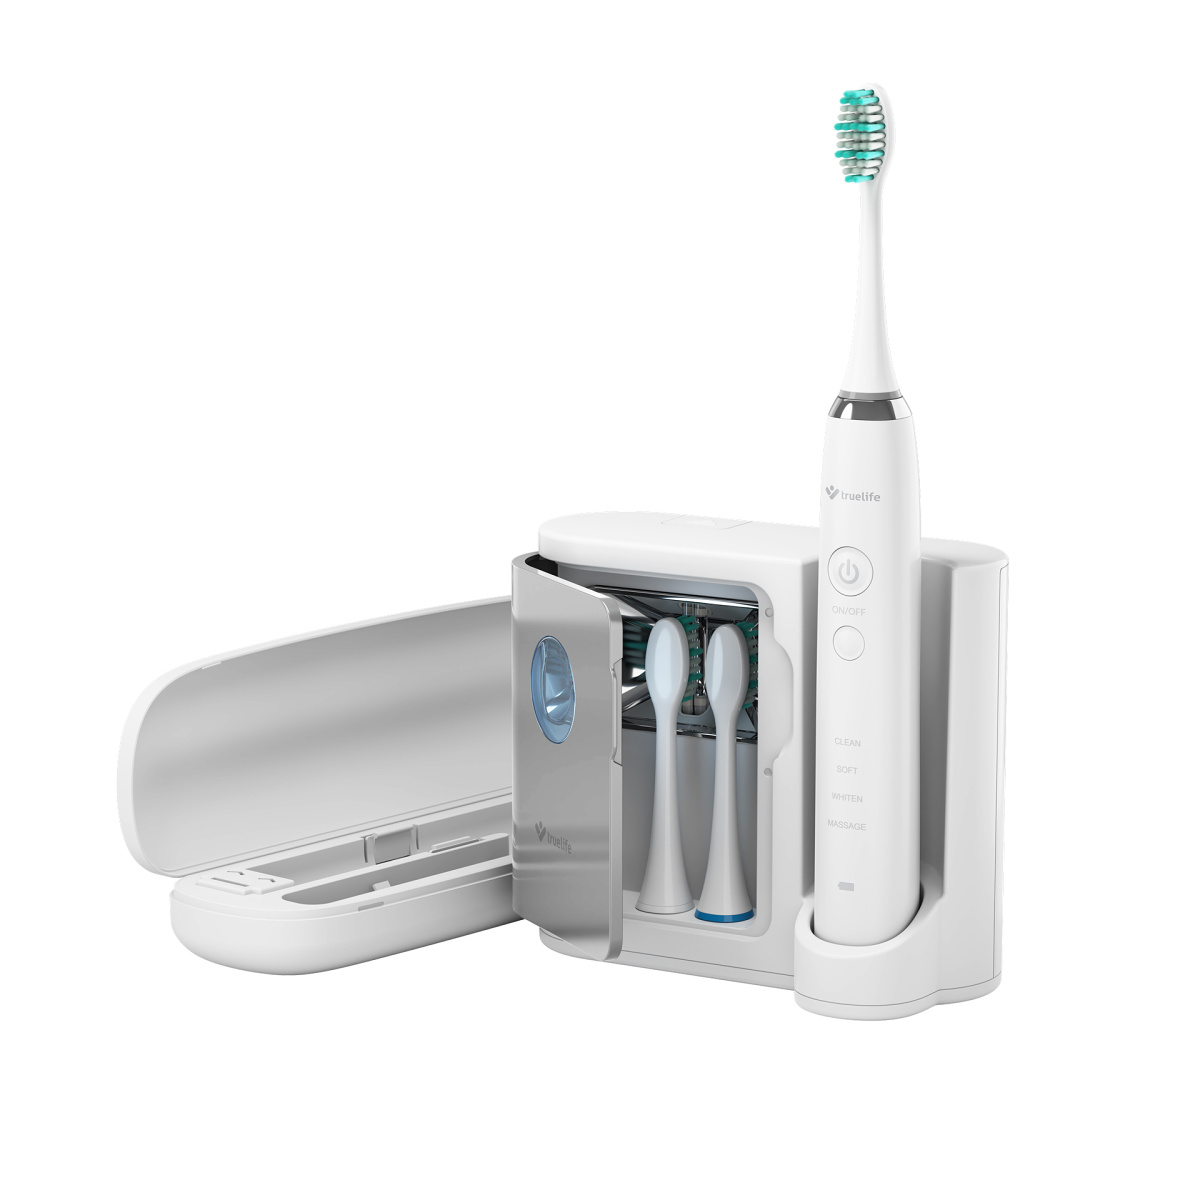 SonicBrush UV – Don't give tooth decay a chance